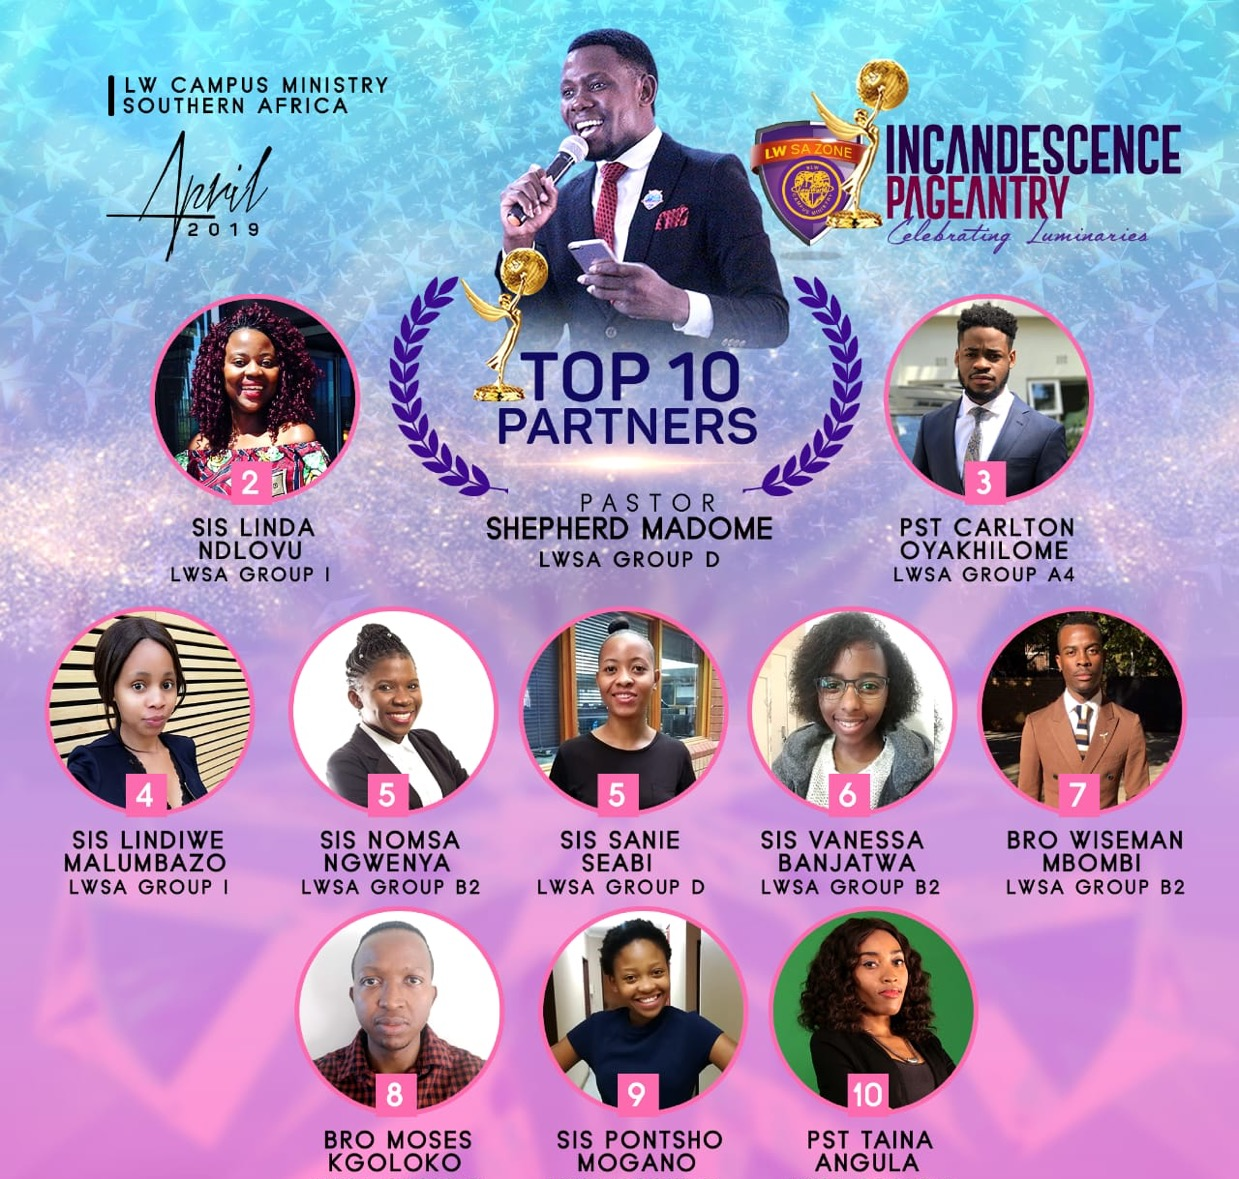 INCANDESCENCE PAGEANTRY WINNERS (APRIL EDITION)